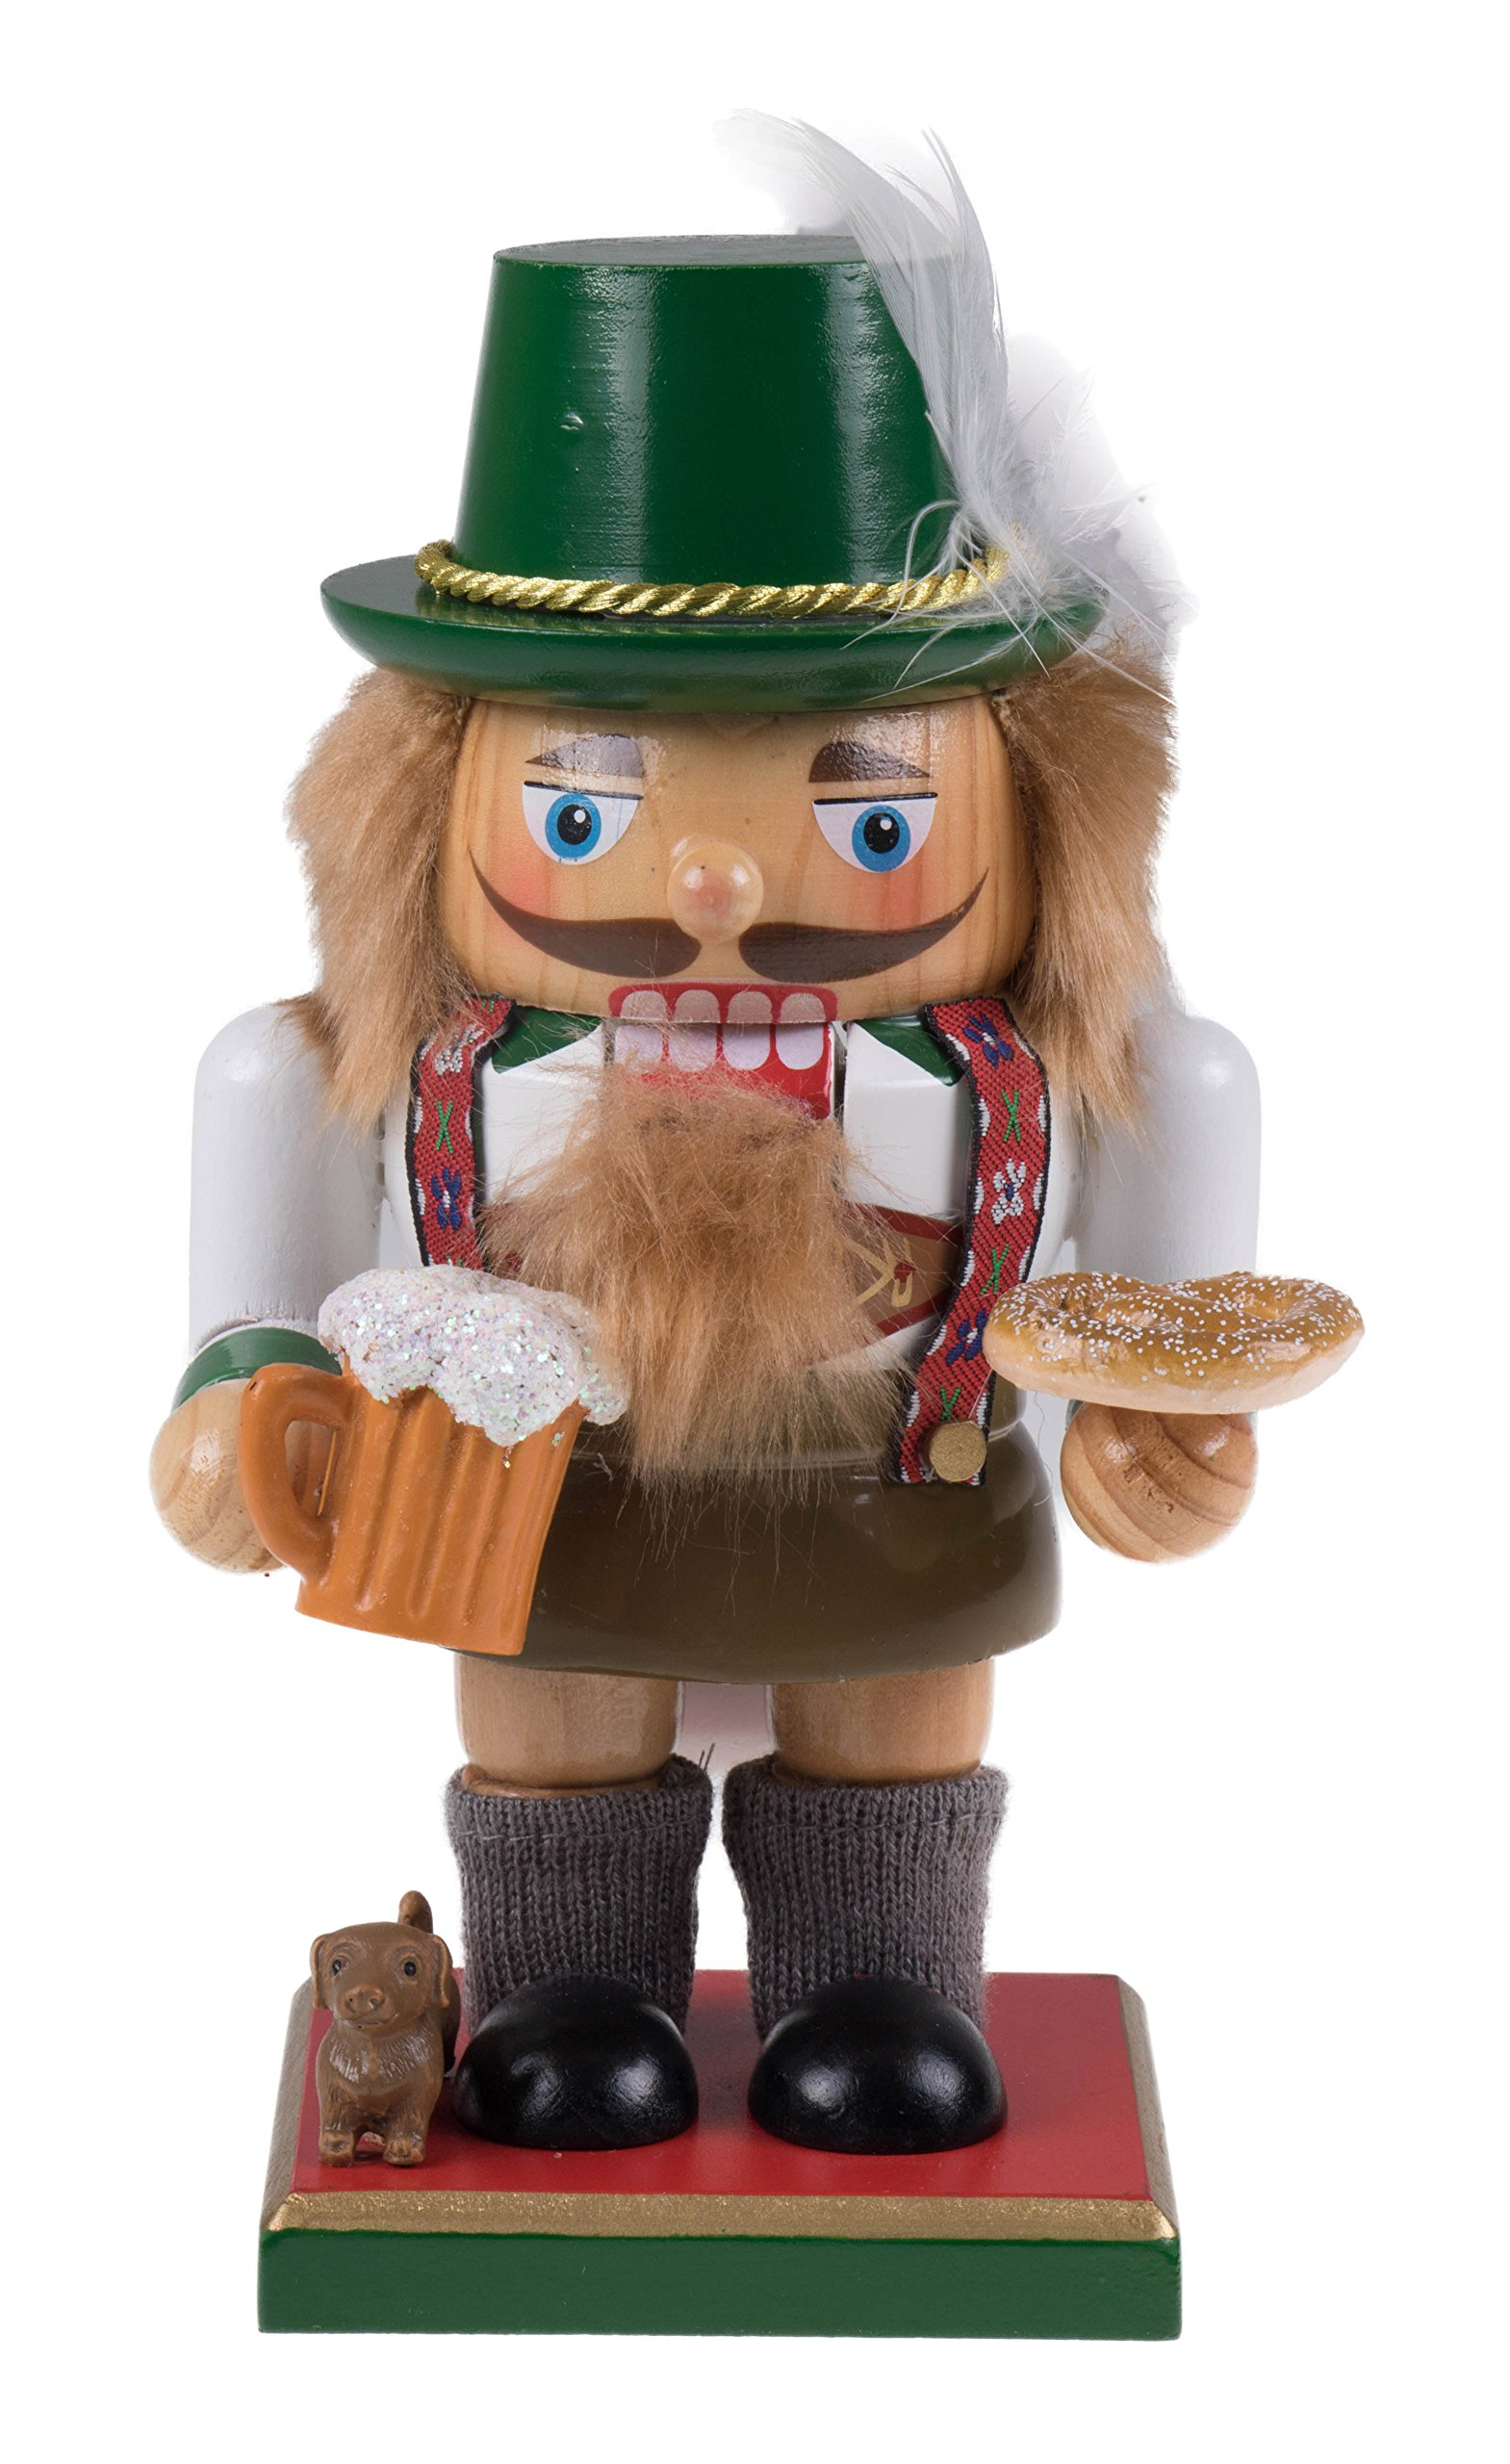 Classic Chubby German Nutcracker by Clever Creations | Wearing Lederhosen & Holding a Mug | Festive Collectible Decor | Perfect for Shelves and Tables | 100% Wood | 7.25'' Tall